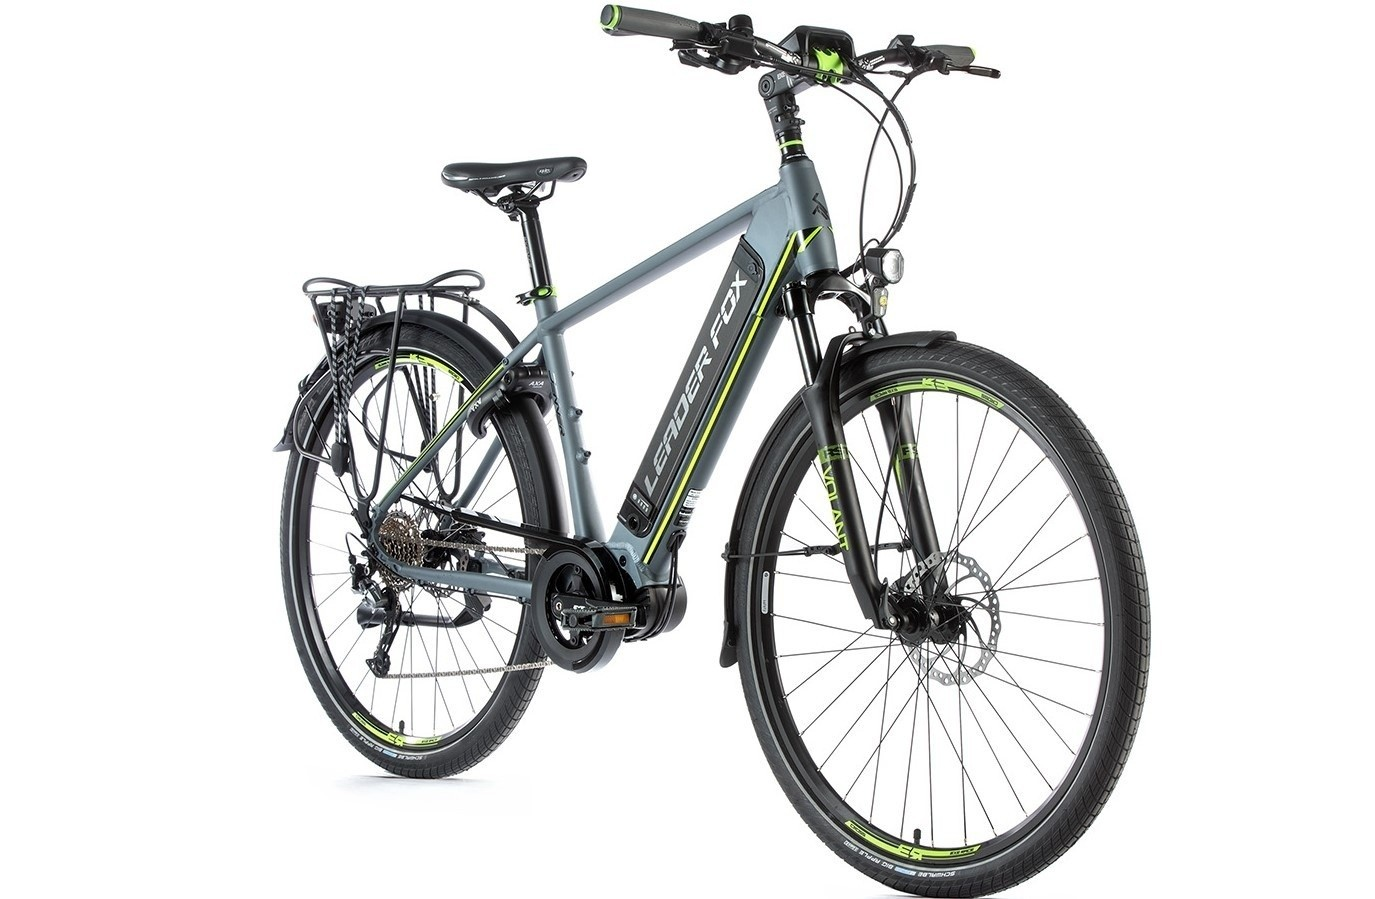 Leader Fox E-Bike Denver heren 8V model 2019 met middenmotor